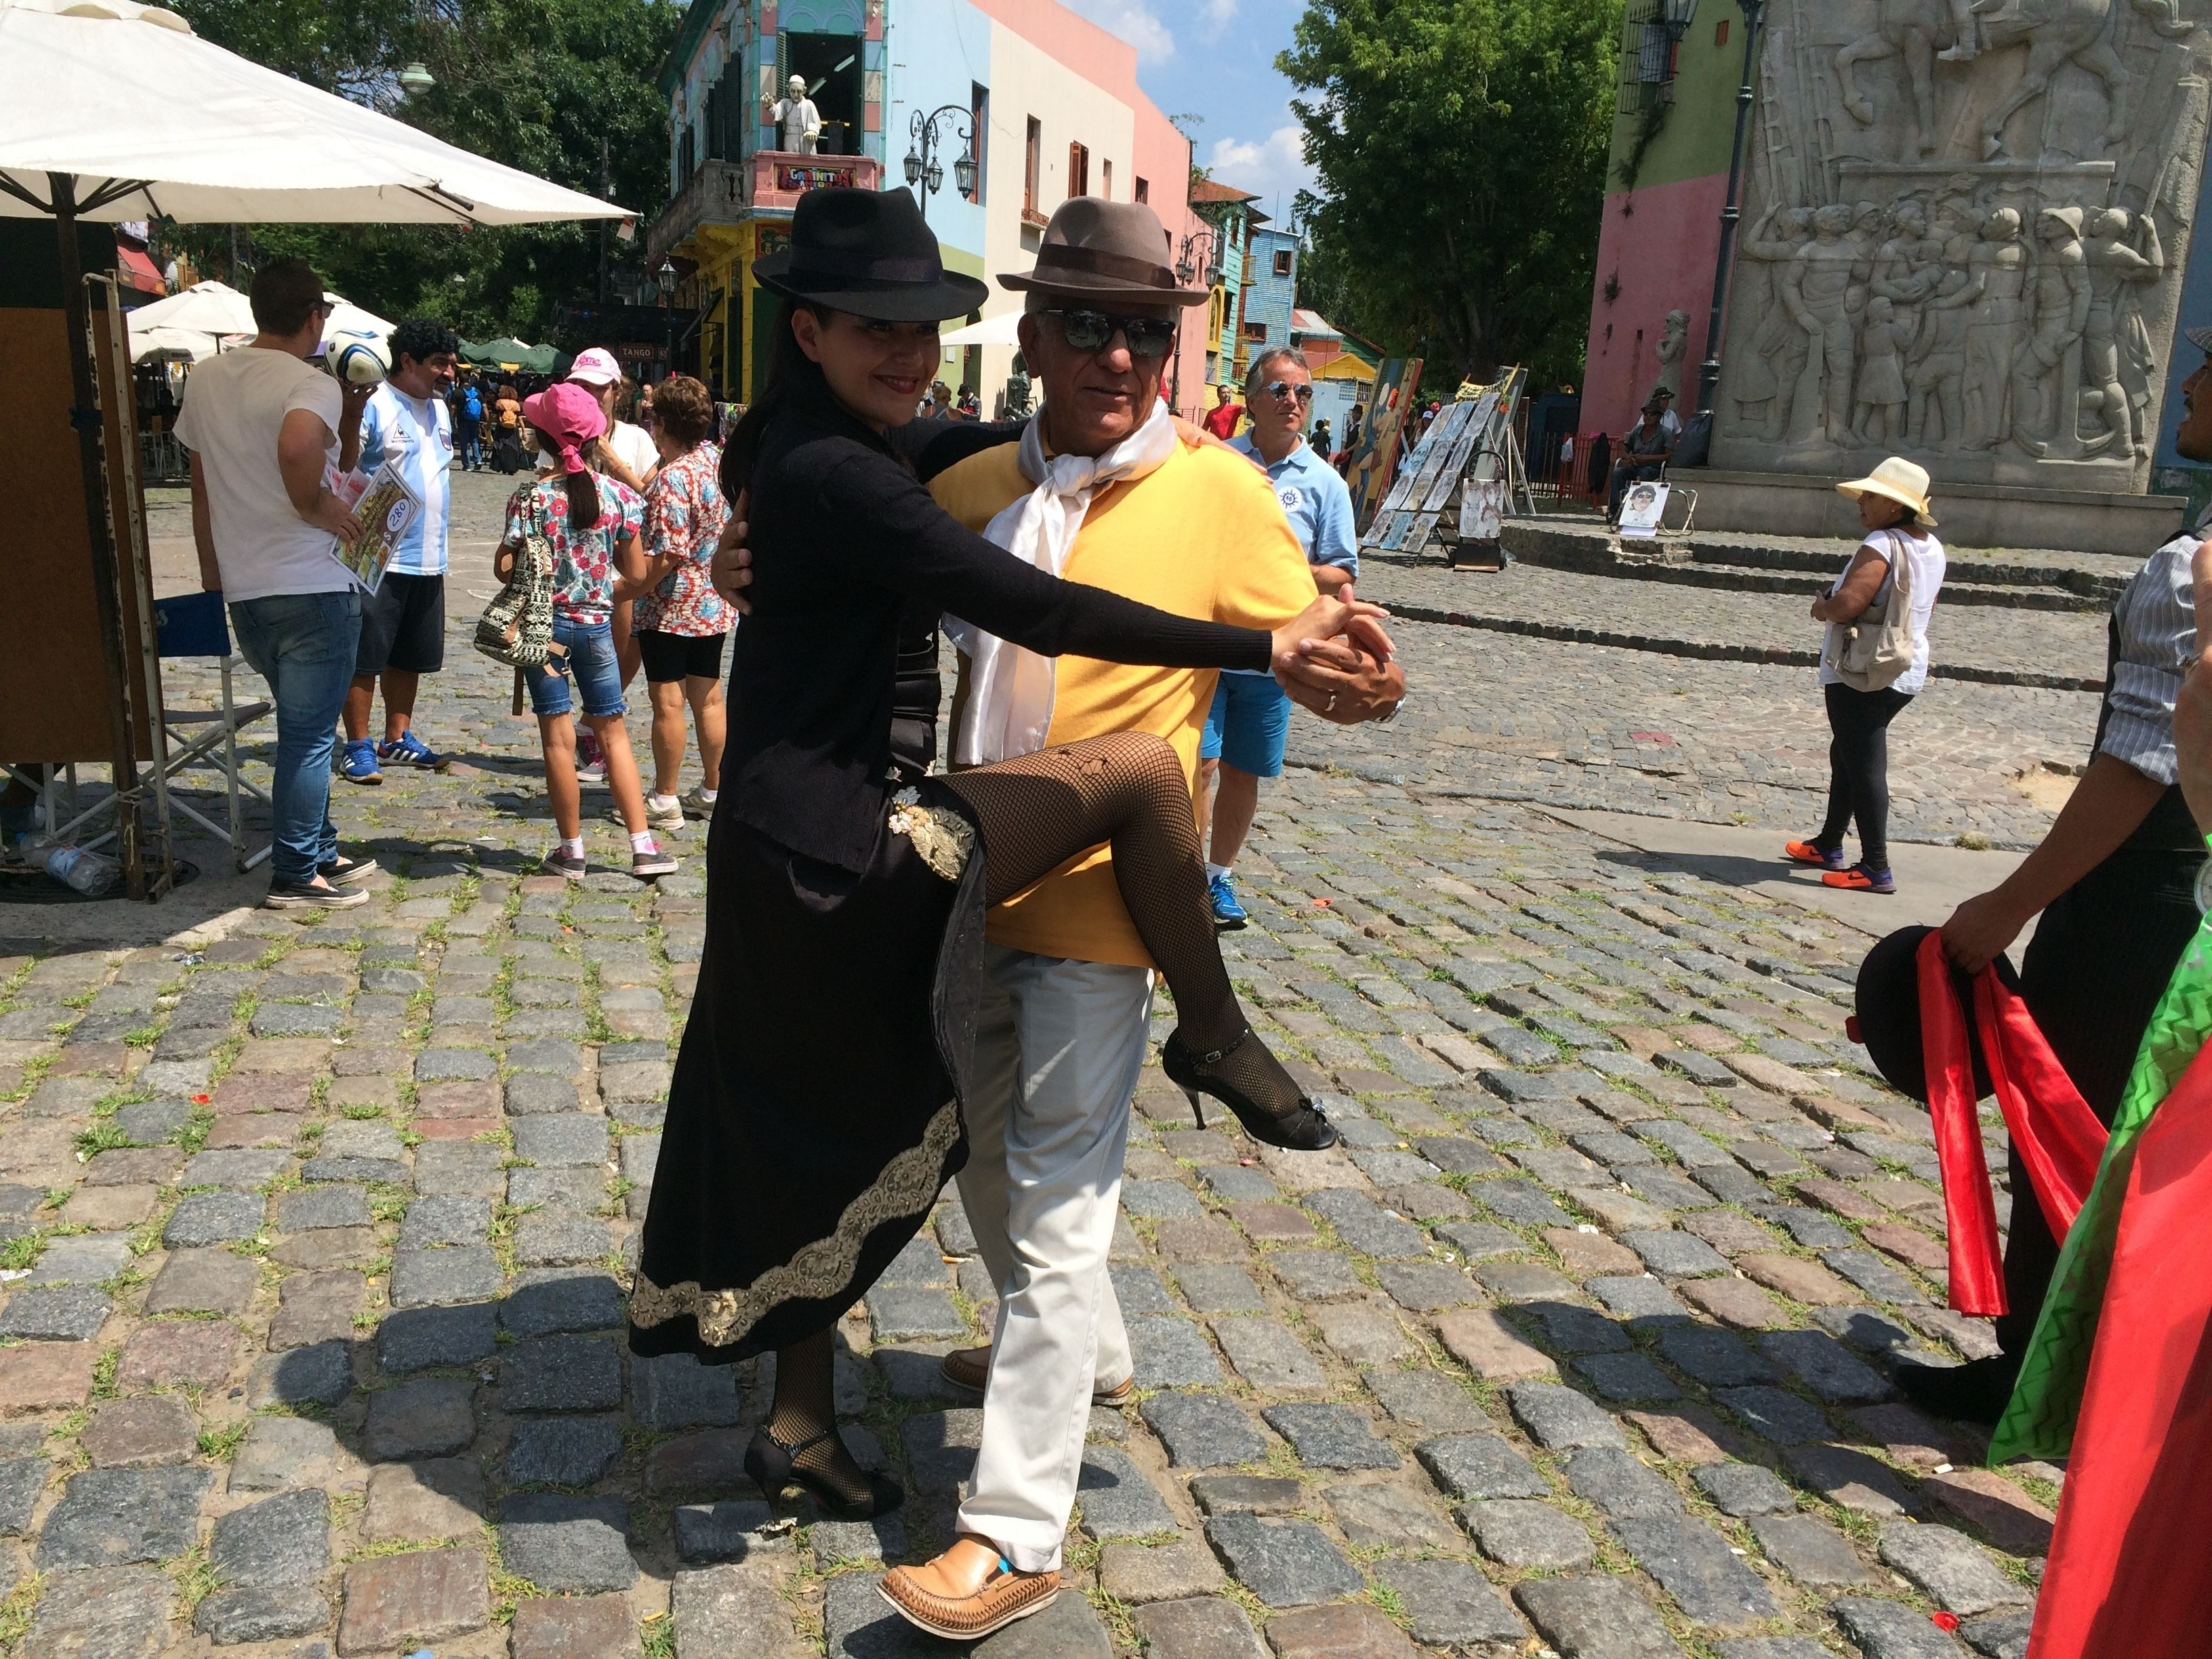 People dancing in Buenos Aires